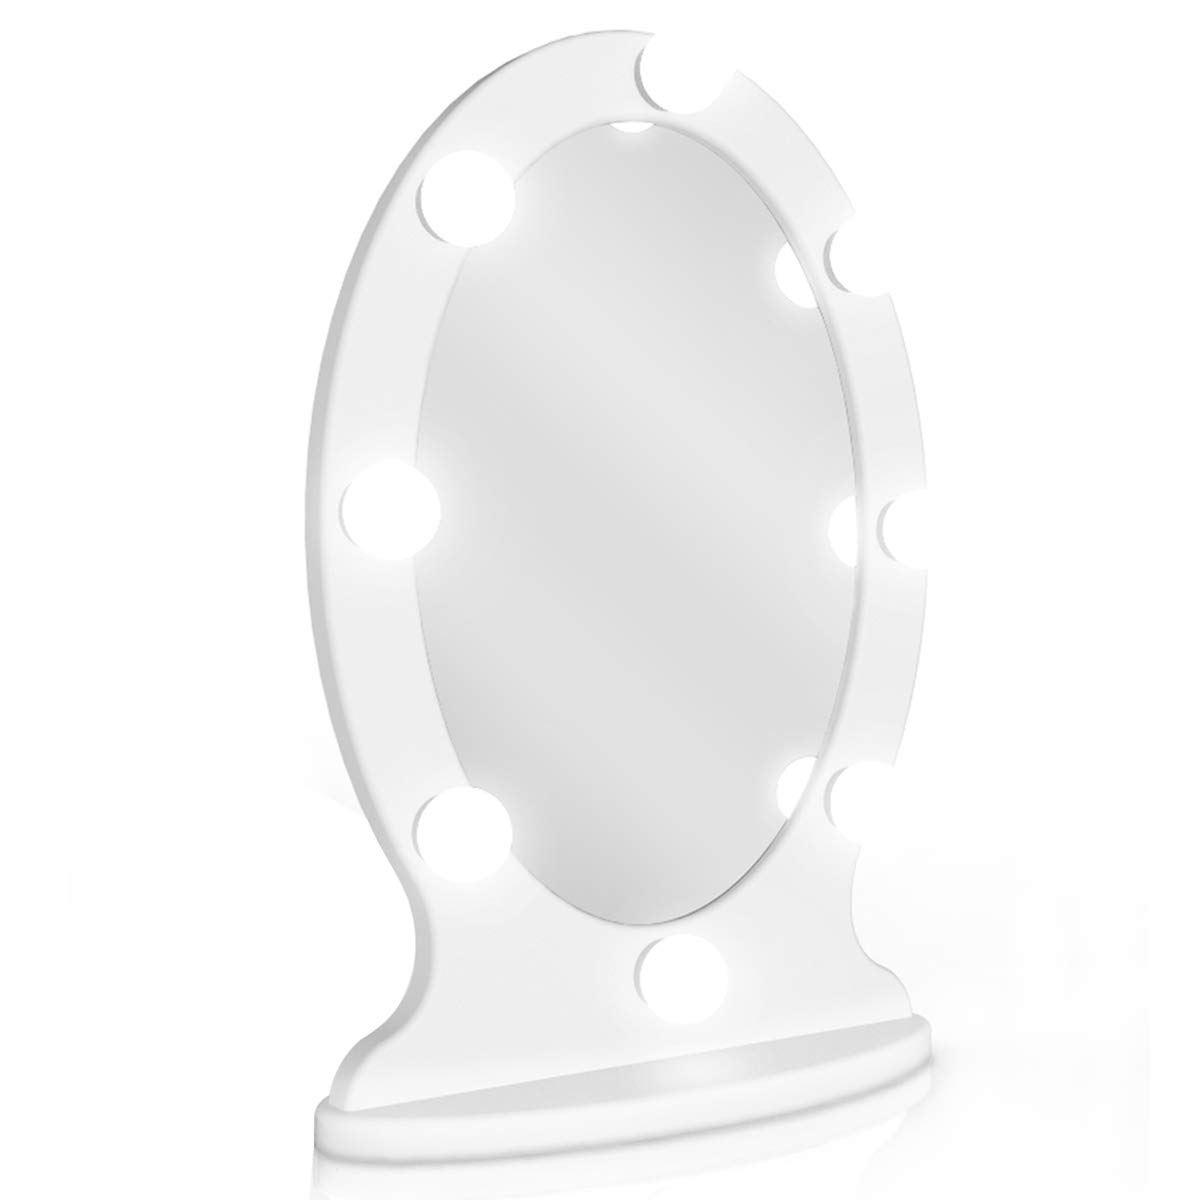 Lighted Vanity Mirror Hollywood Makeup Mirror with Lights, Light up Oval Table-Top Mirror Illuminated Cosmetic Mirrors with Stand for Dressing Desk, Dimmable LED Bulbs Touch Control, Plug-in, White haojian M12V-004-W